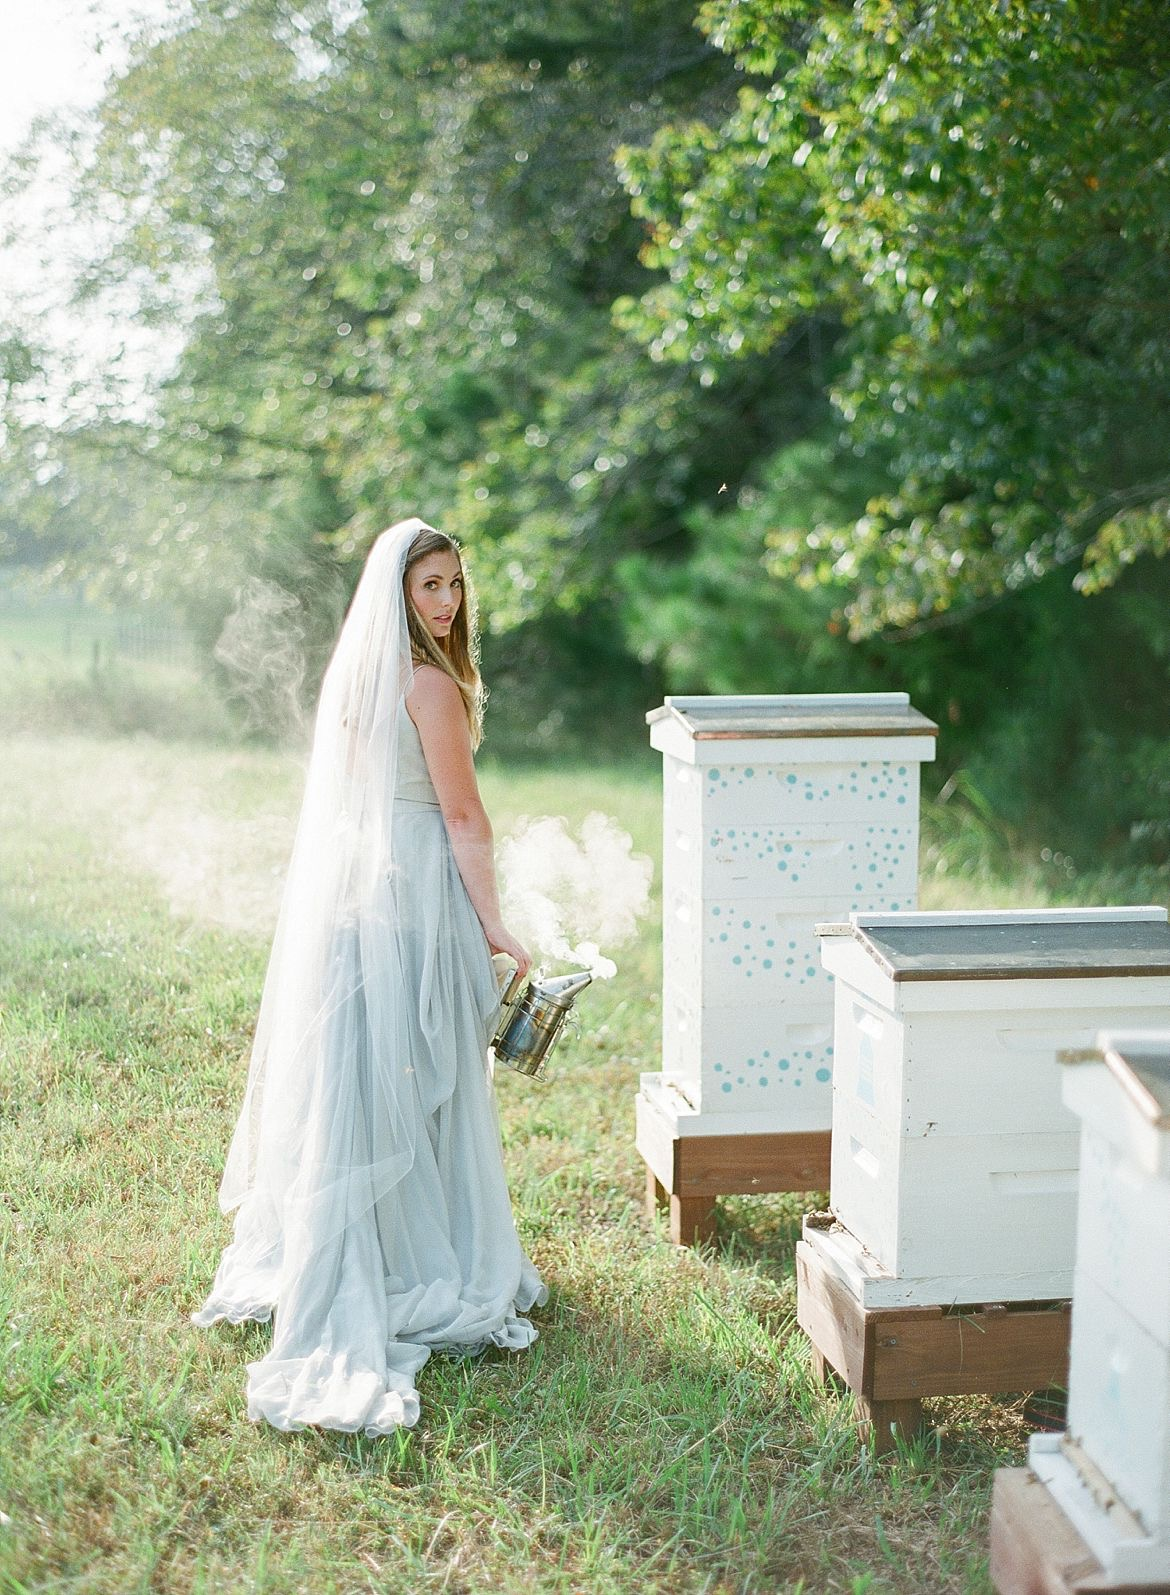 Best Film Photography Wedding Blog